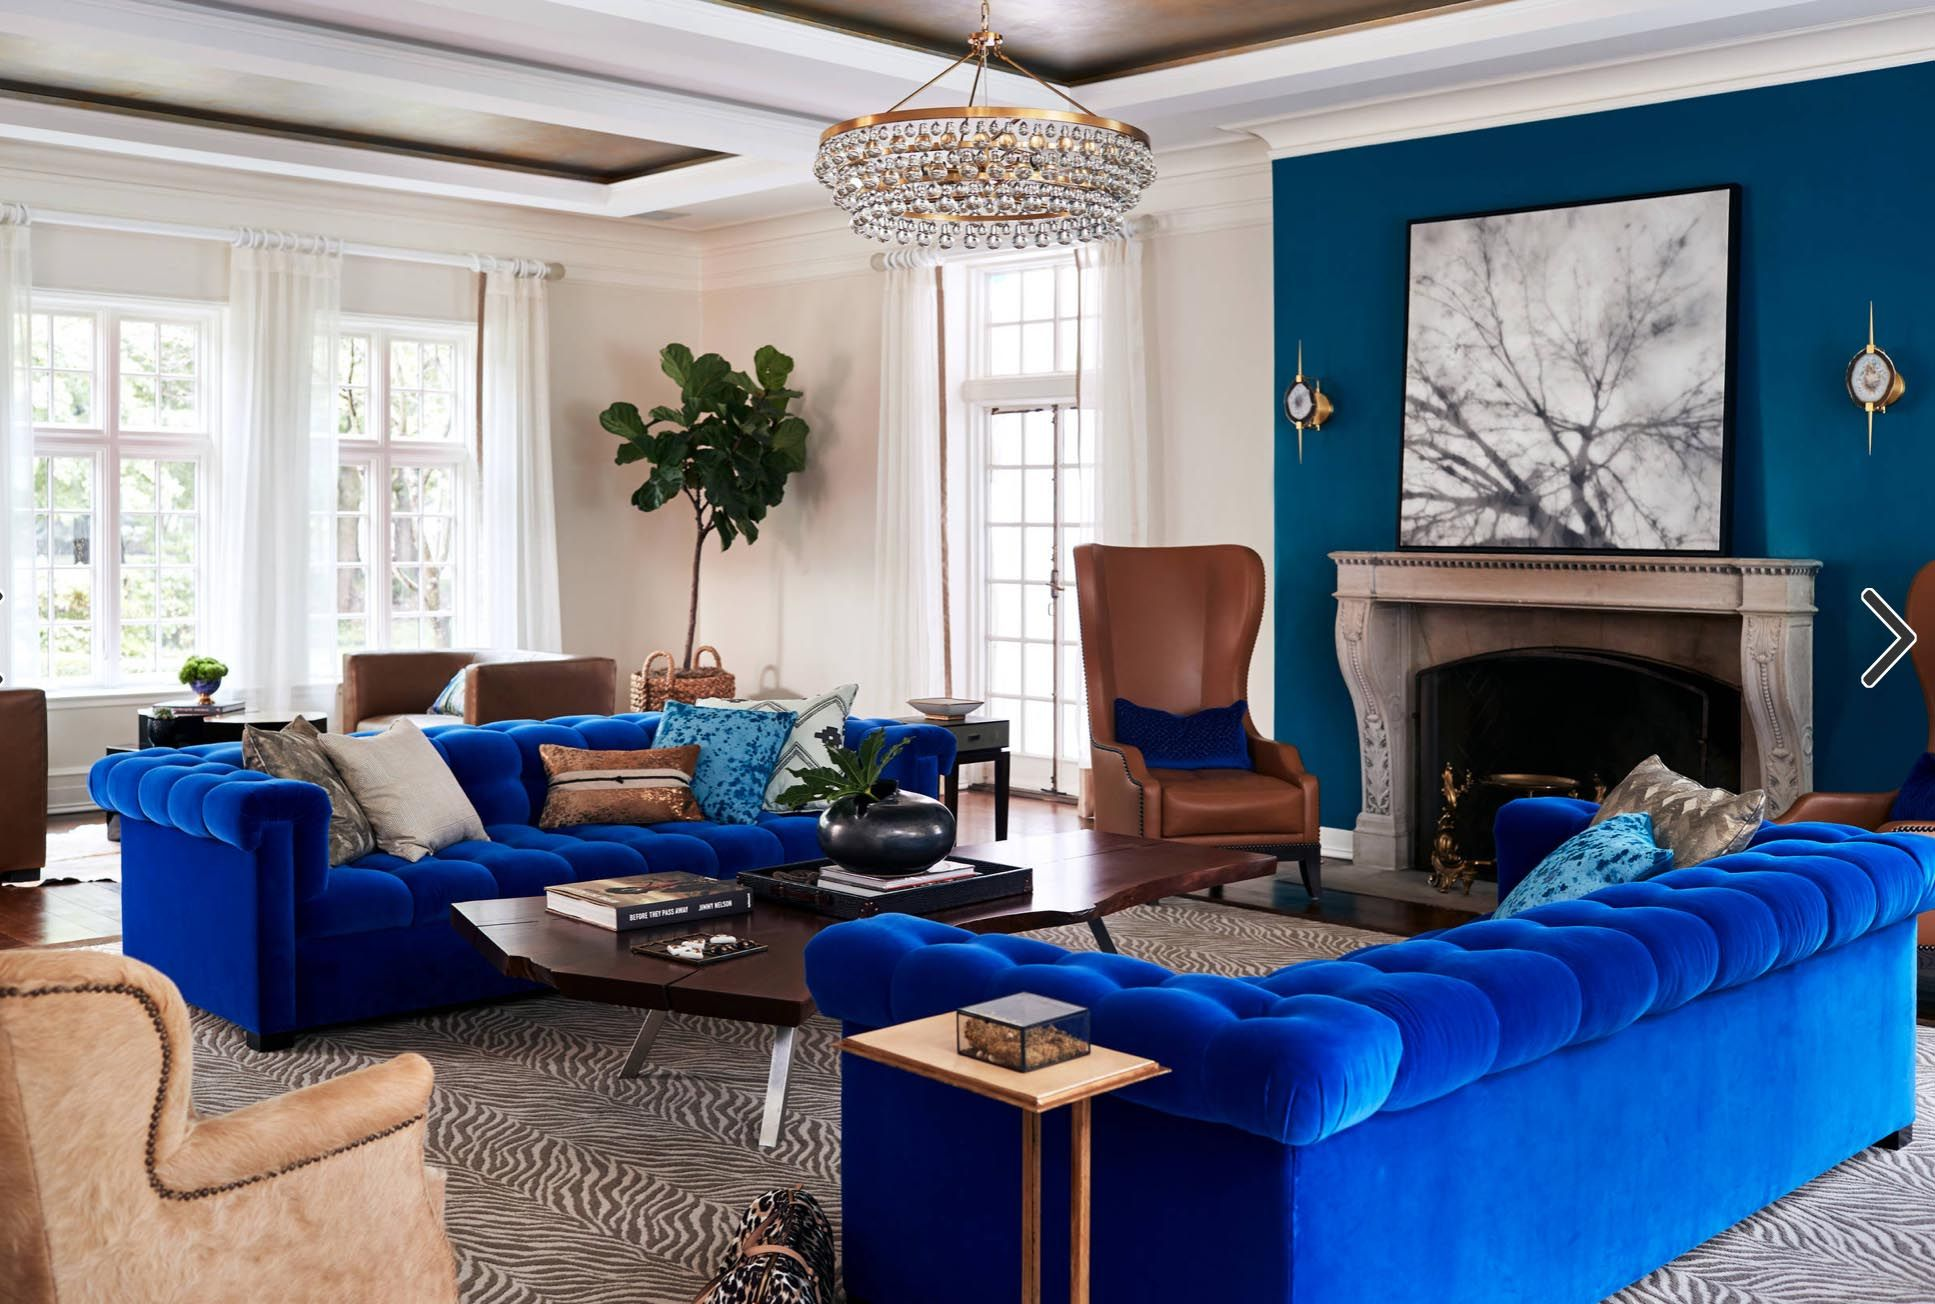 Royal Blue Velvet Sofa Tufted Blue Accent Wall Transitional